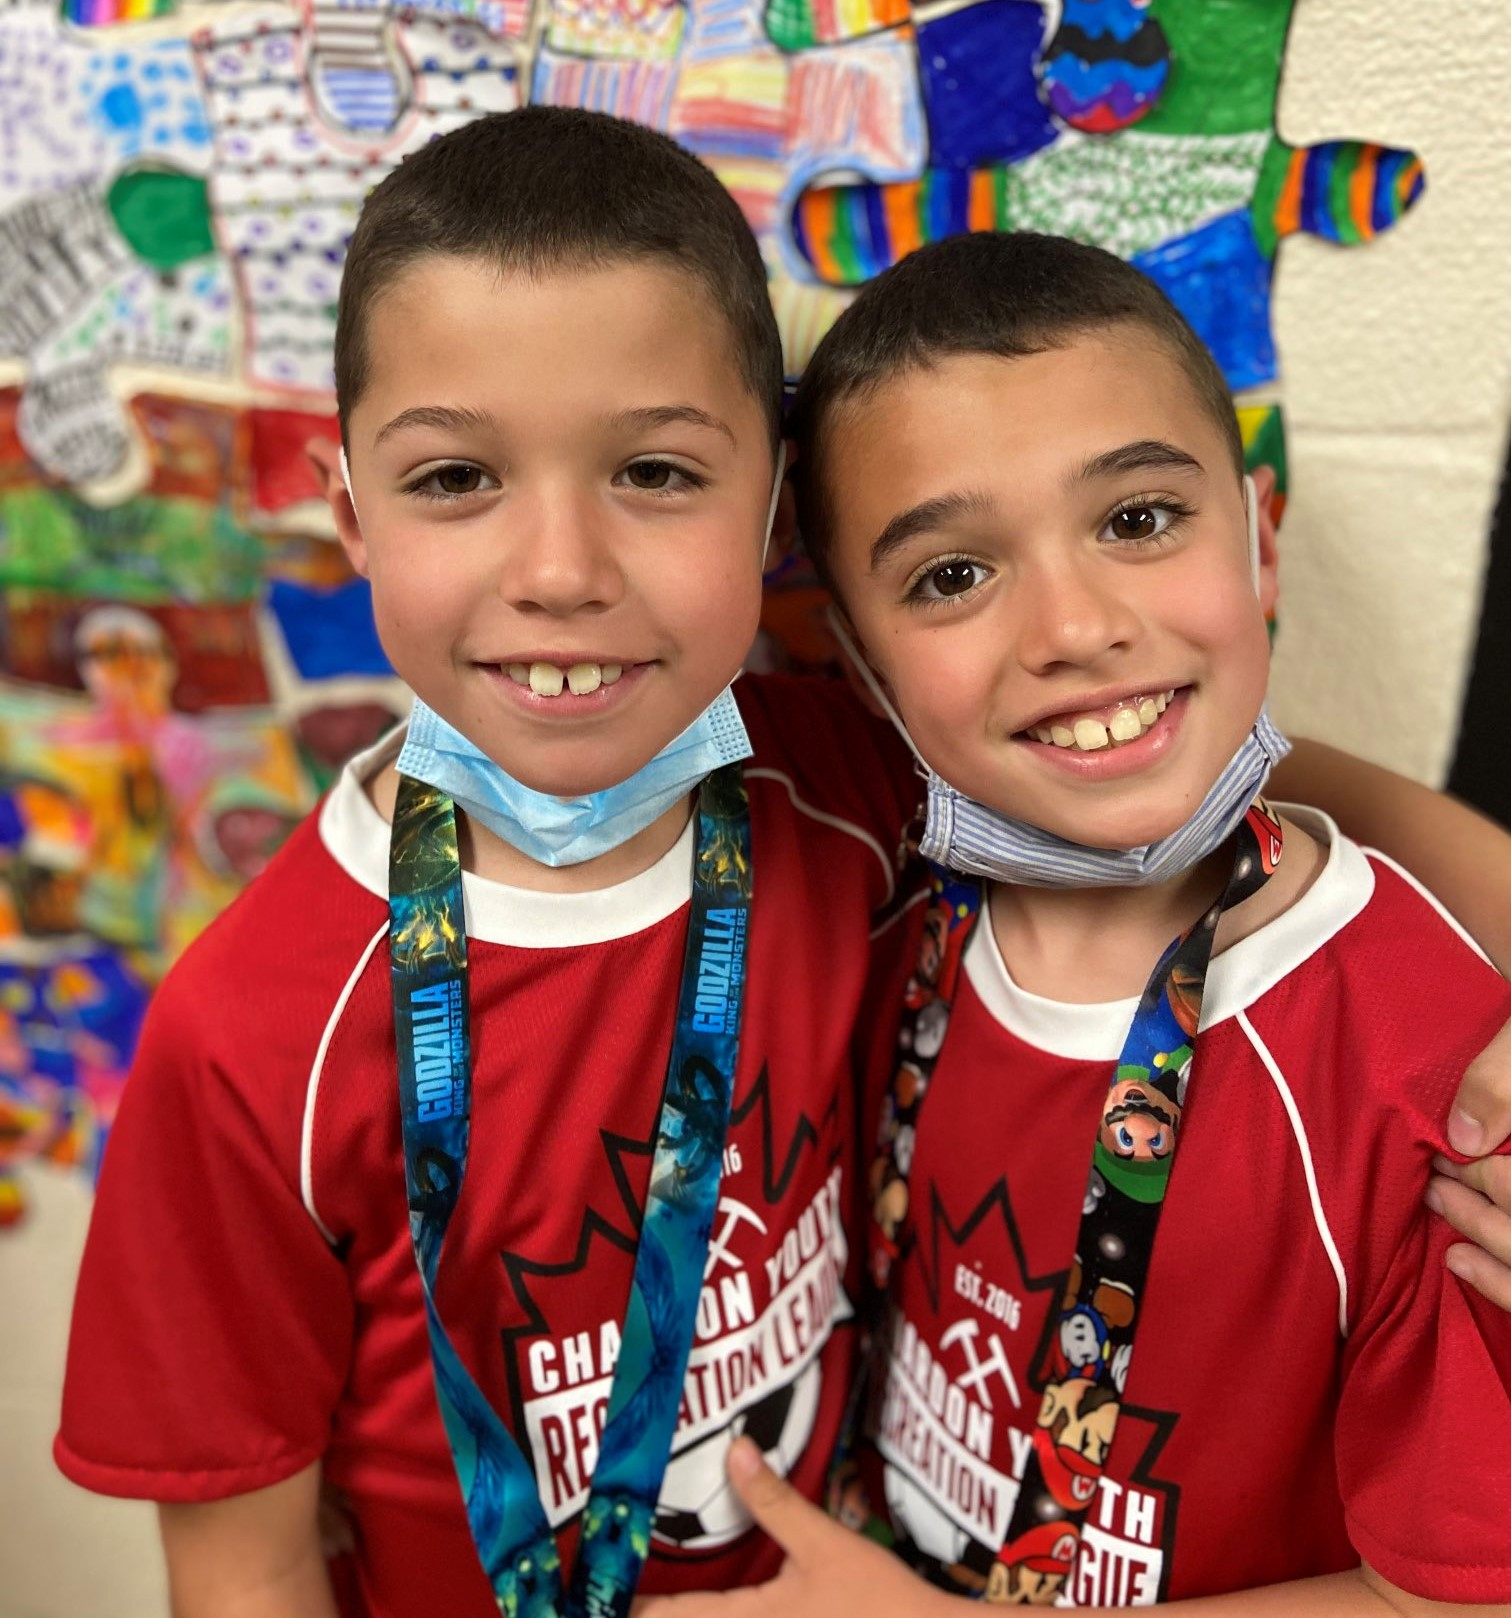 2 young male students at Munson Elementary standing in front of artwork on a wall smiling and with their arms around each other